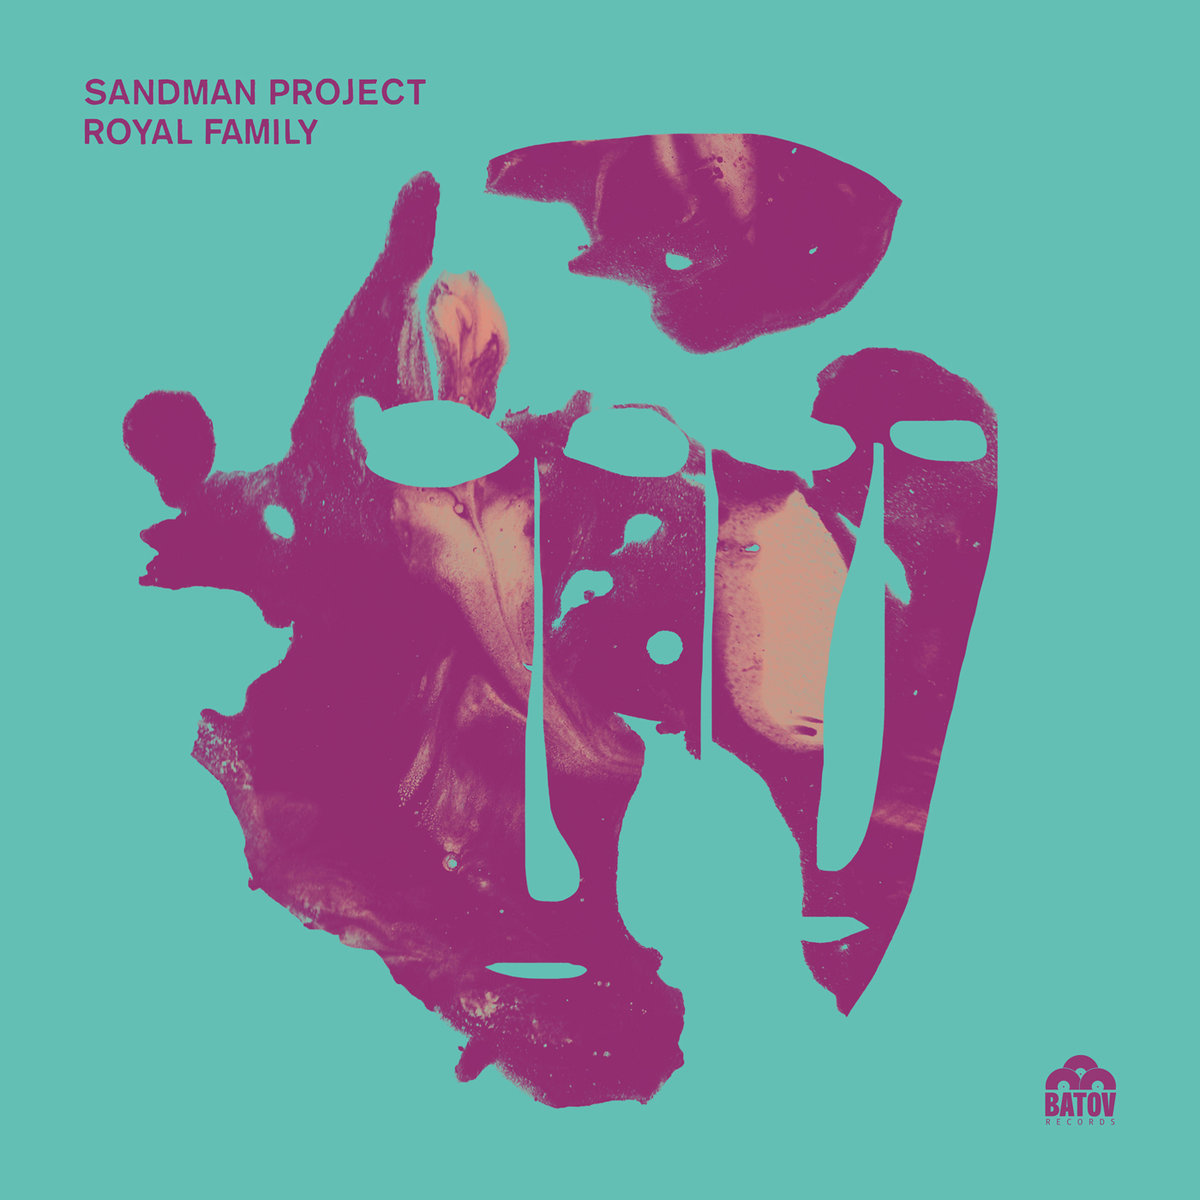 SANDMAN PROJECT - ROYAL FAMILY